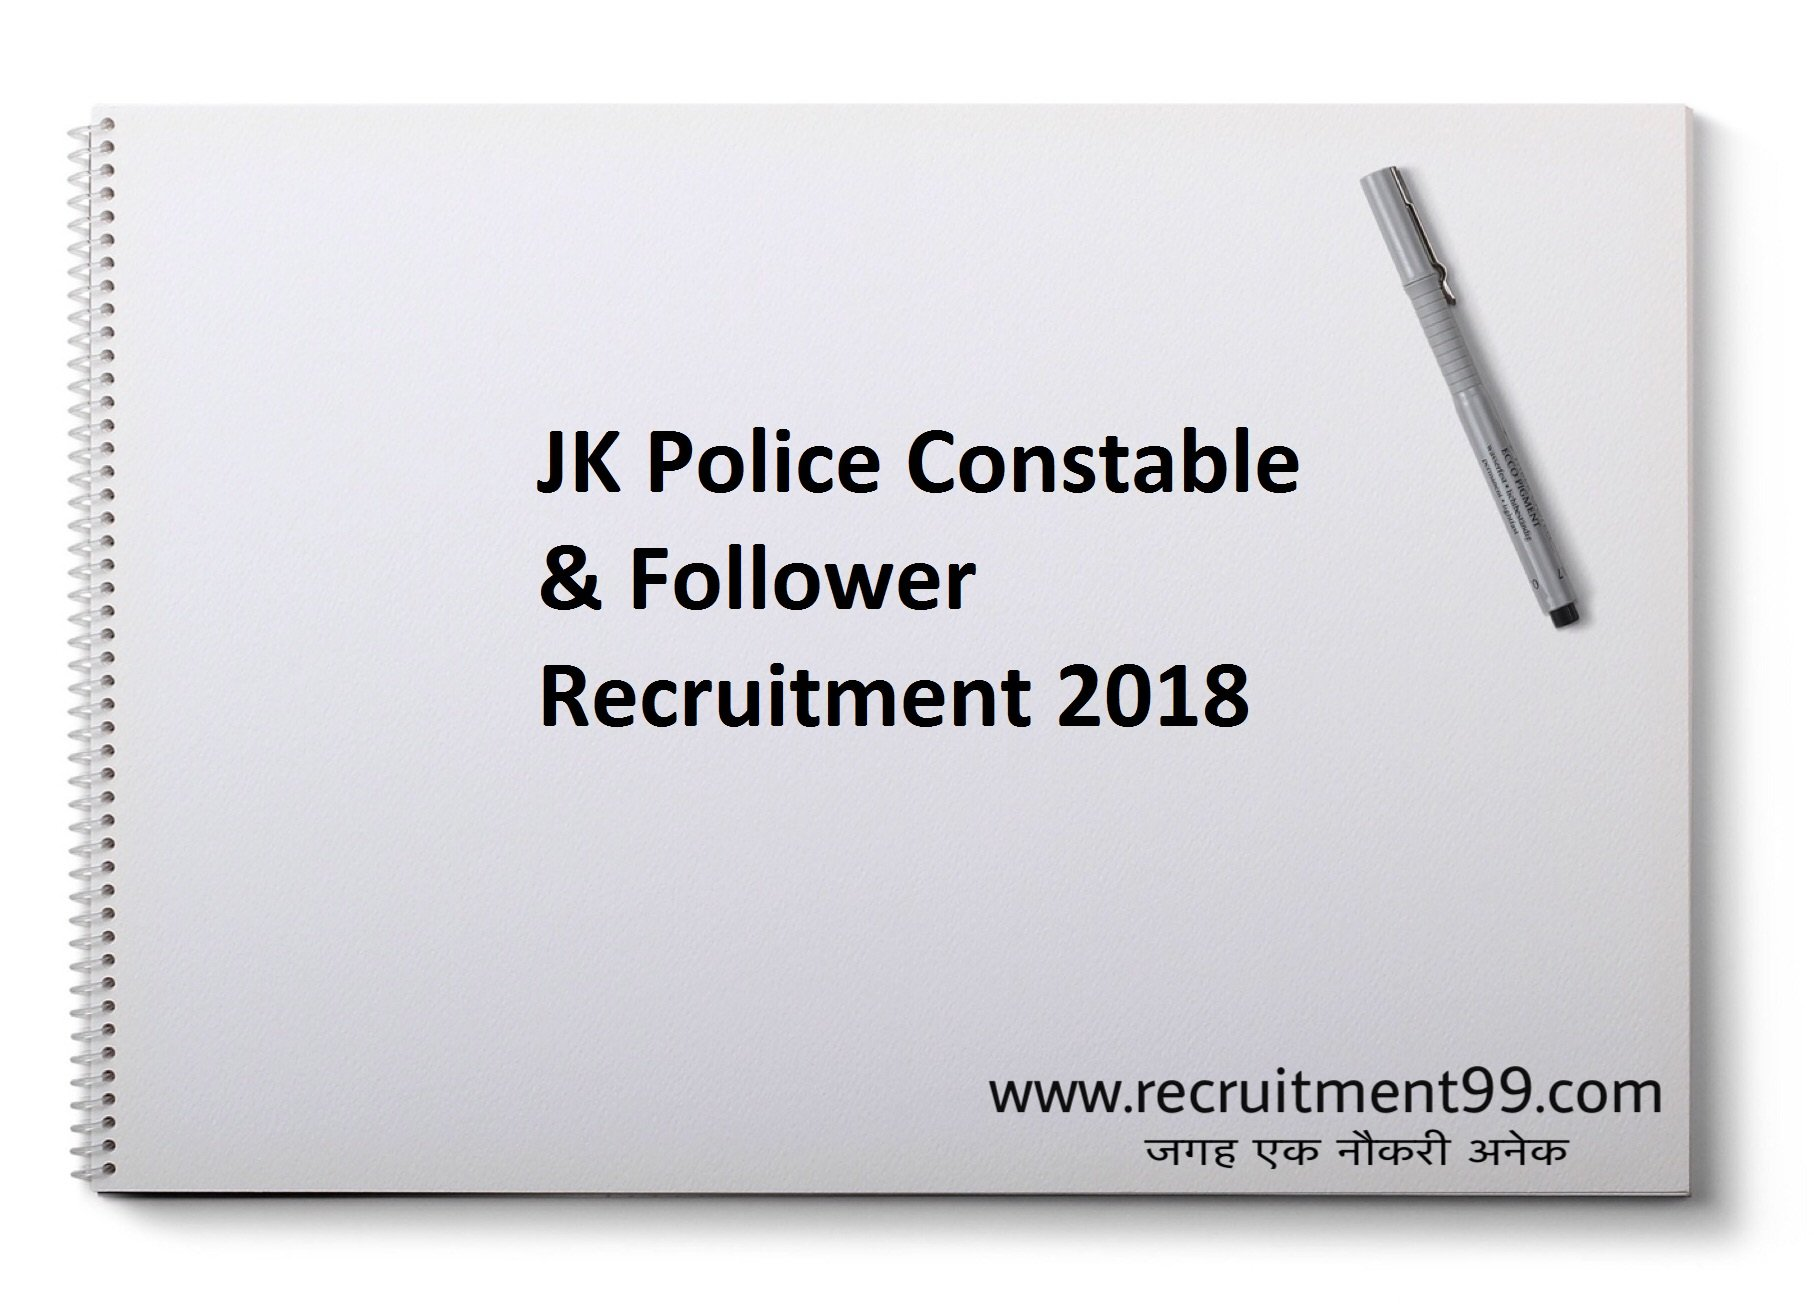 JK Police Constable Follower Recruitment Admit Card Result 2018